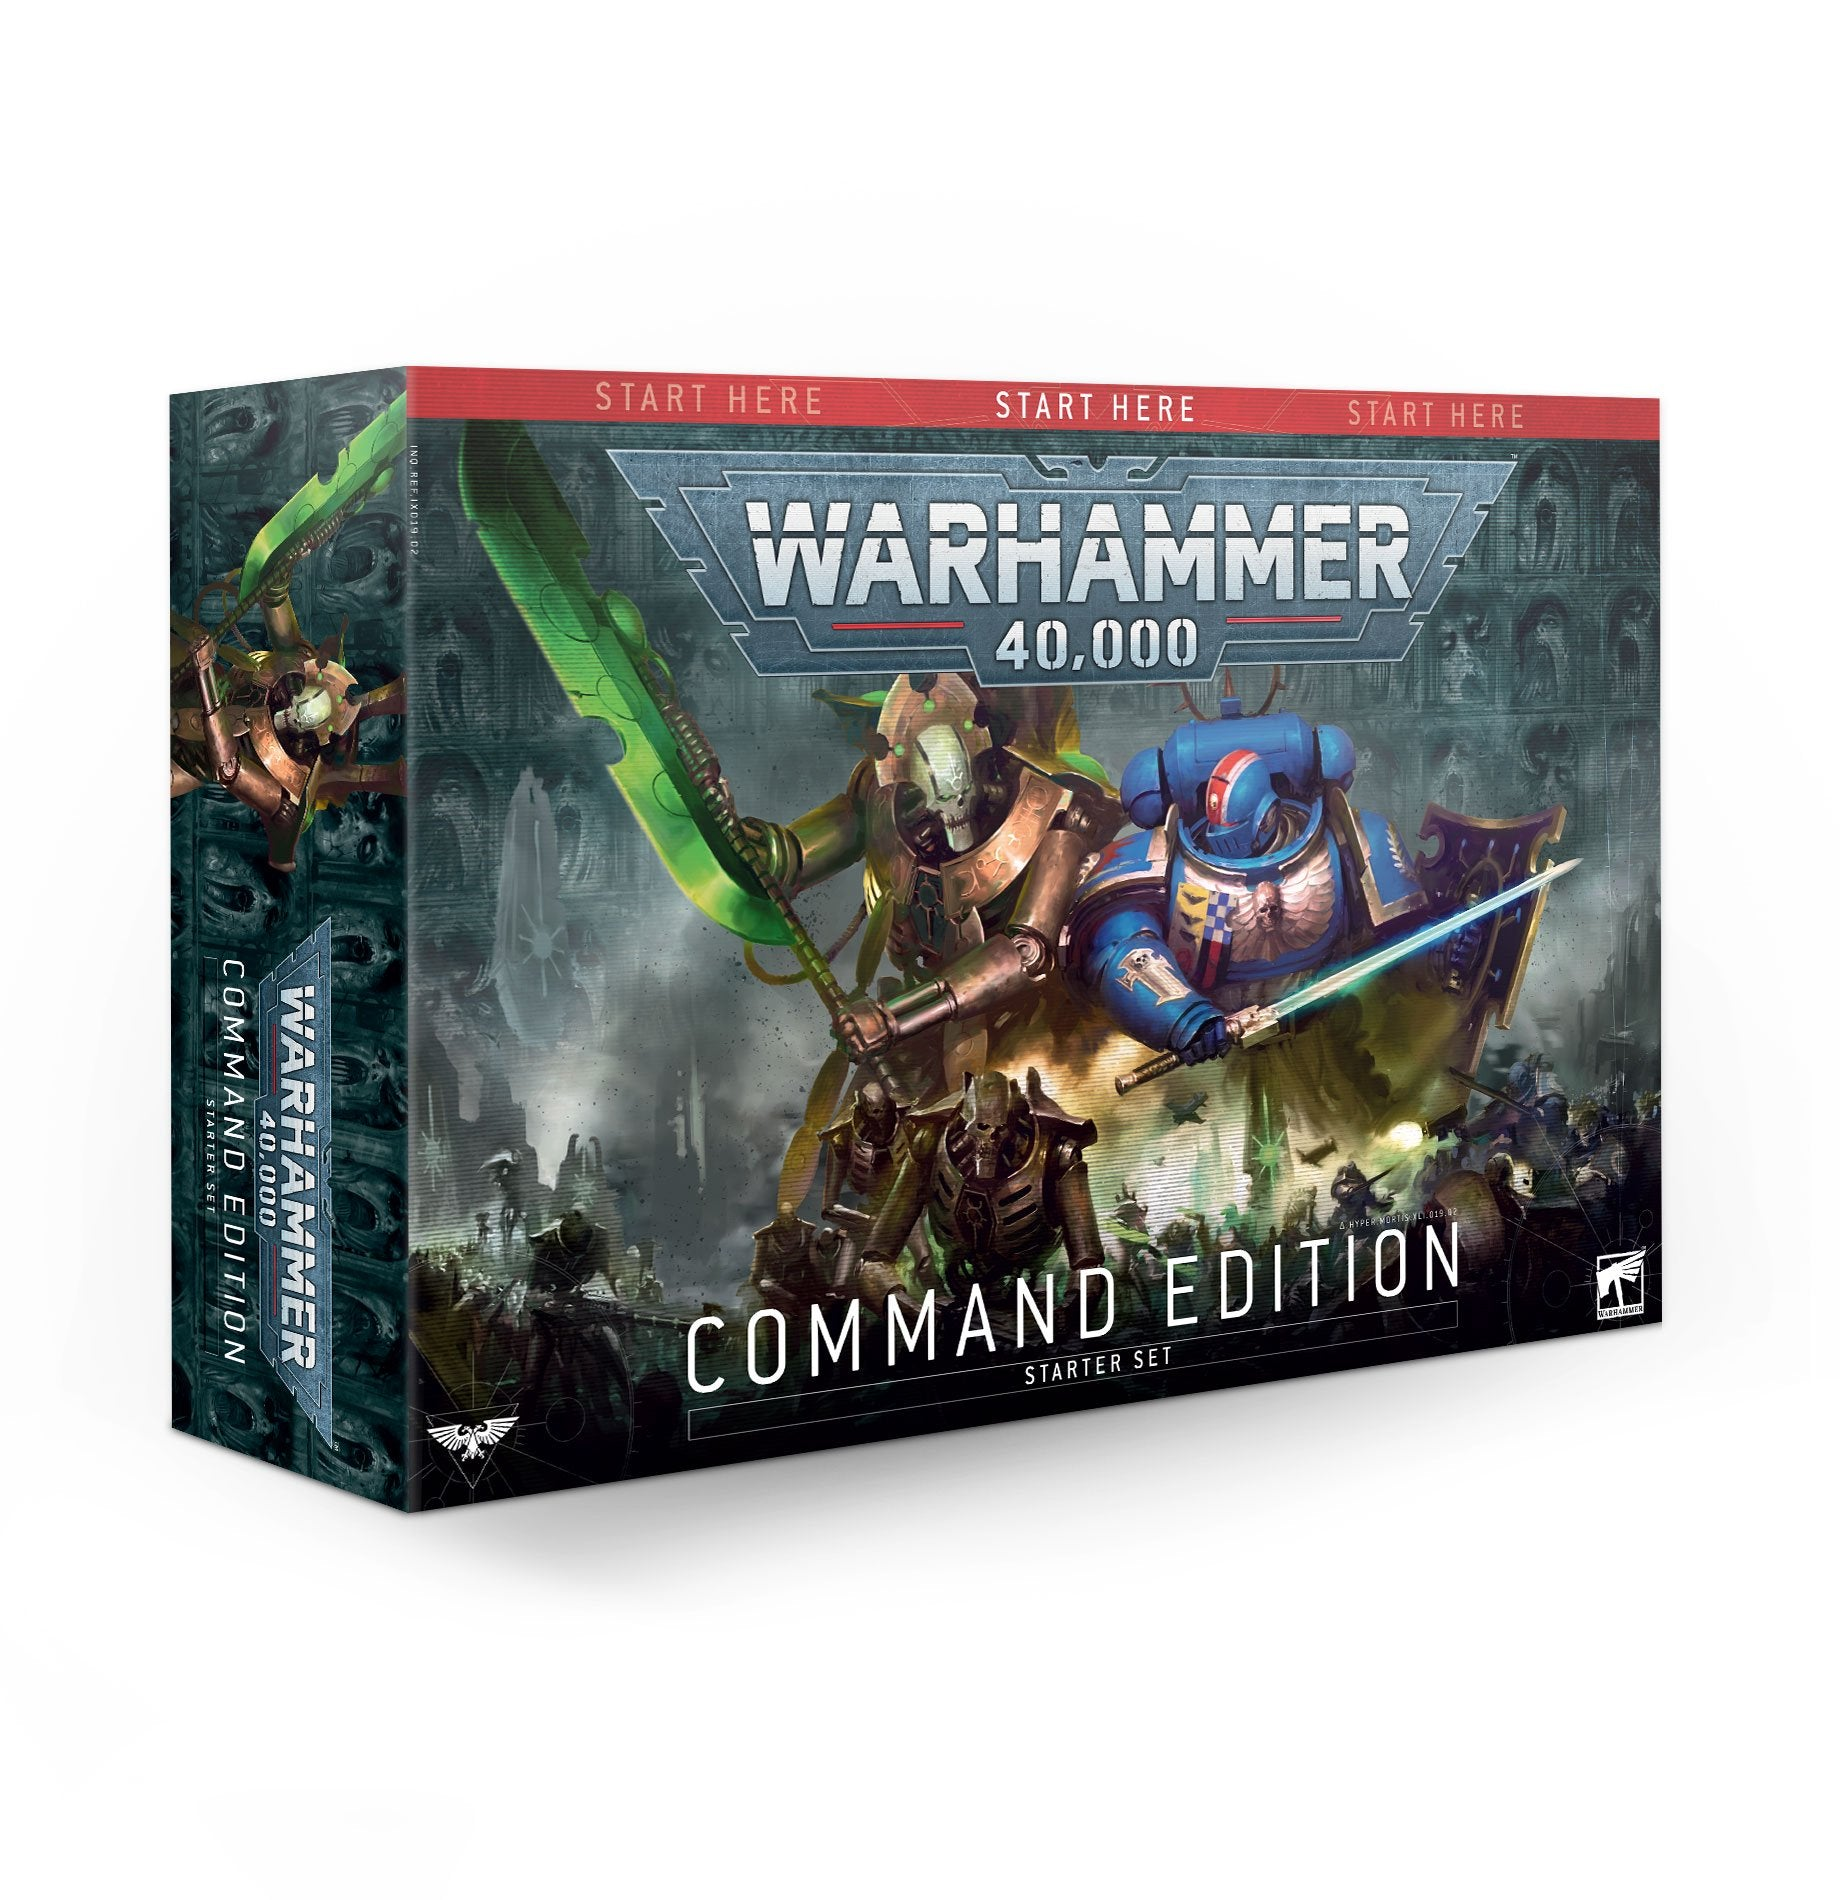 Warhammer 40K: Command Edition | Misty Mountain Games